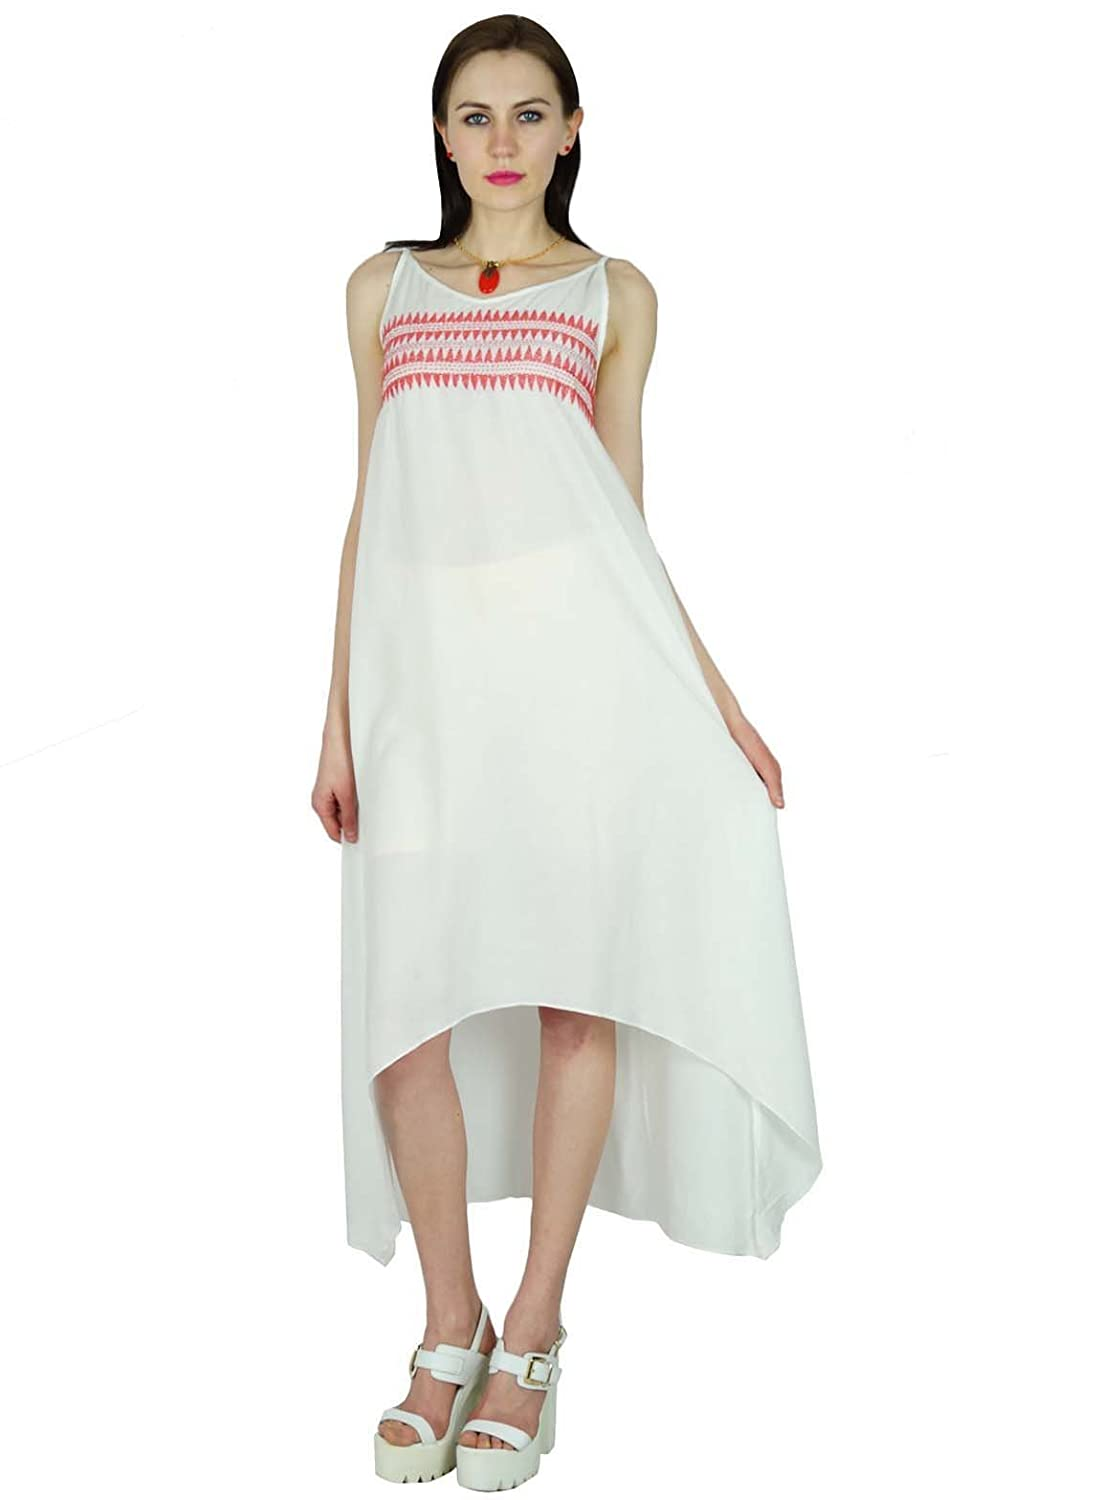 Bimba Women Summer Dress Mid Calf Length Embroidered Casual Asymmetrical Dress